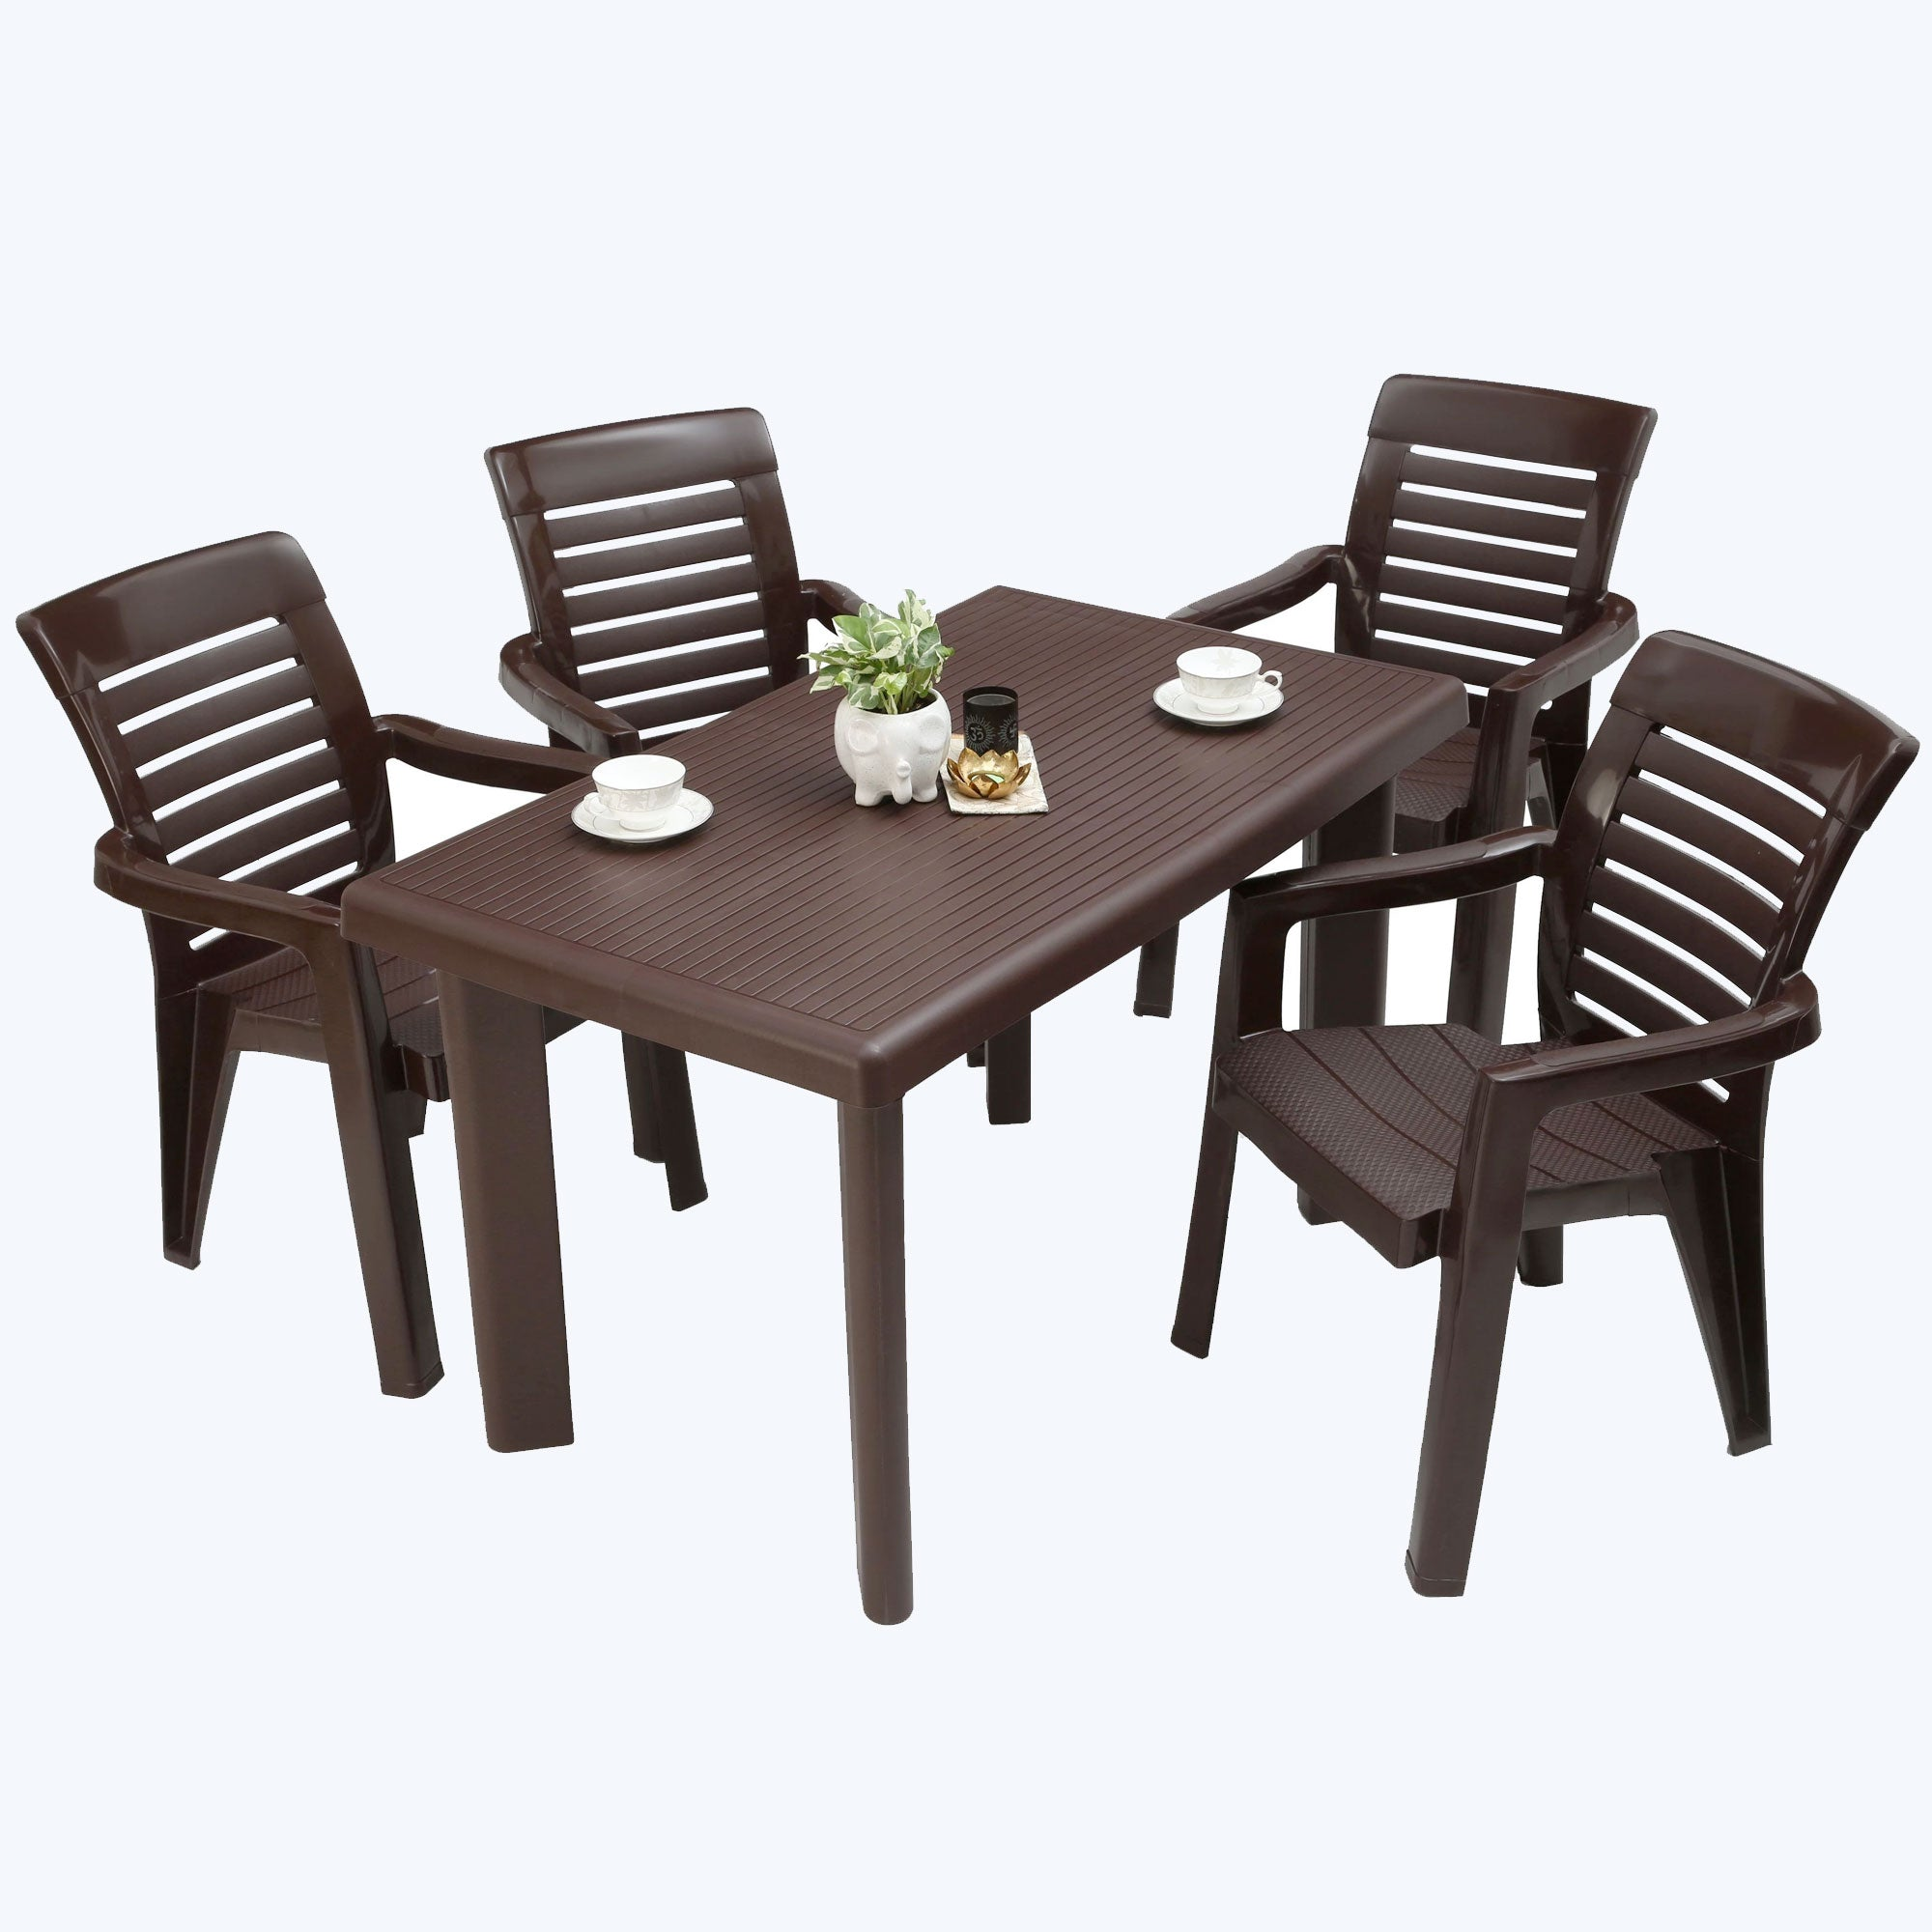 Chair and table set plastic